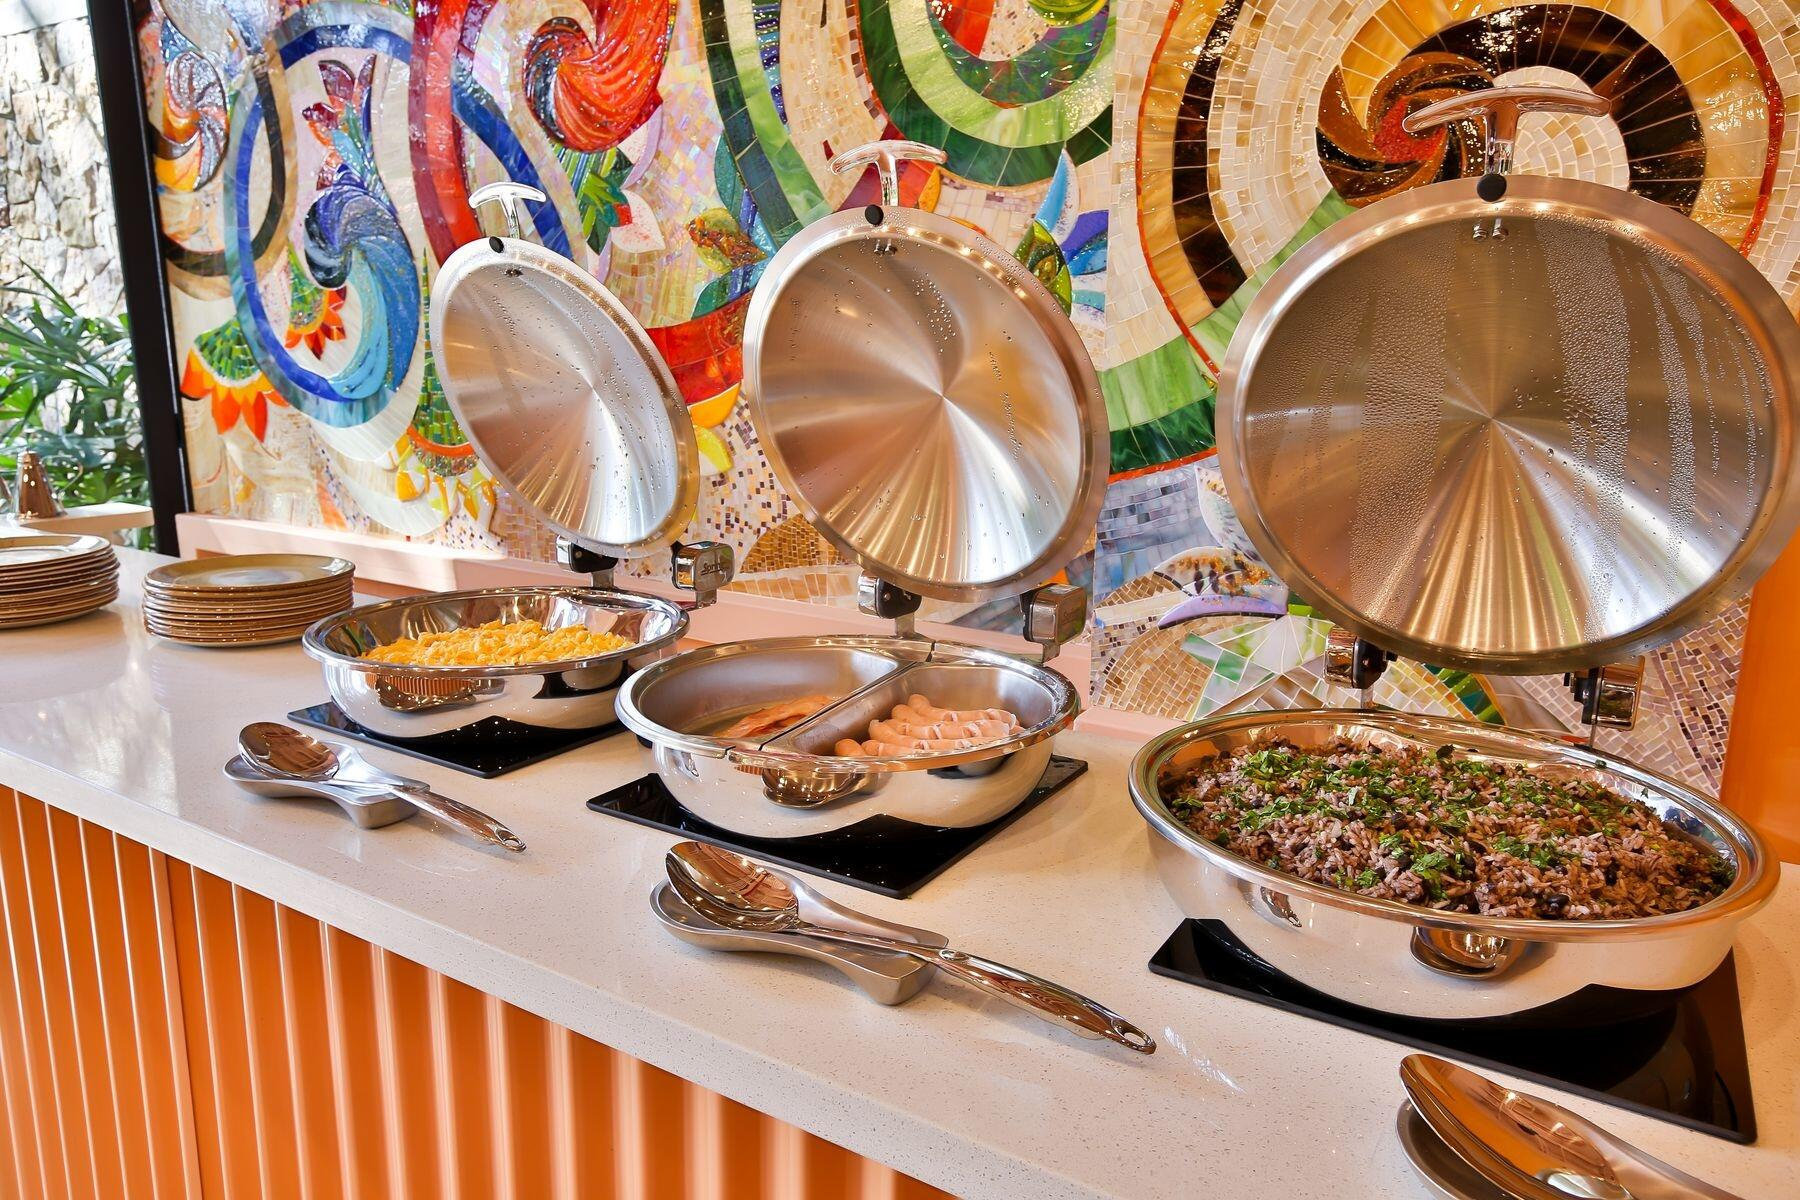 Breakfast buffet served in electric chafing dishes